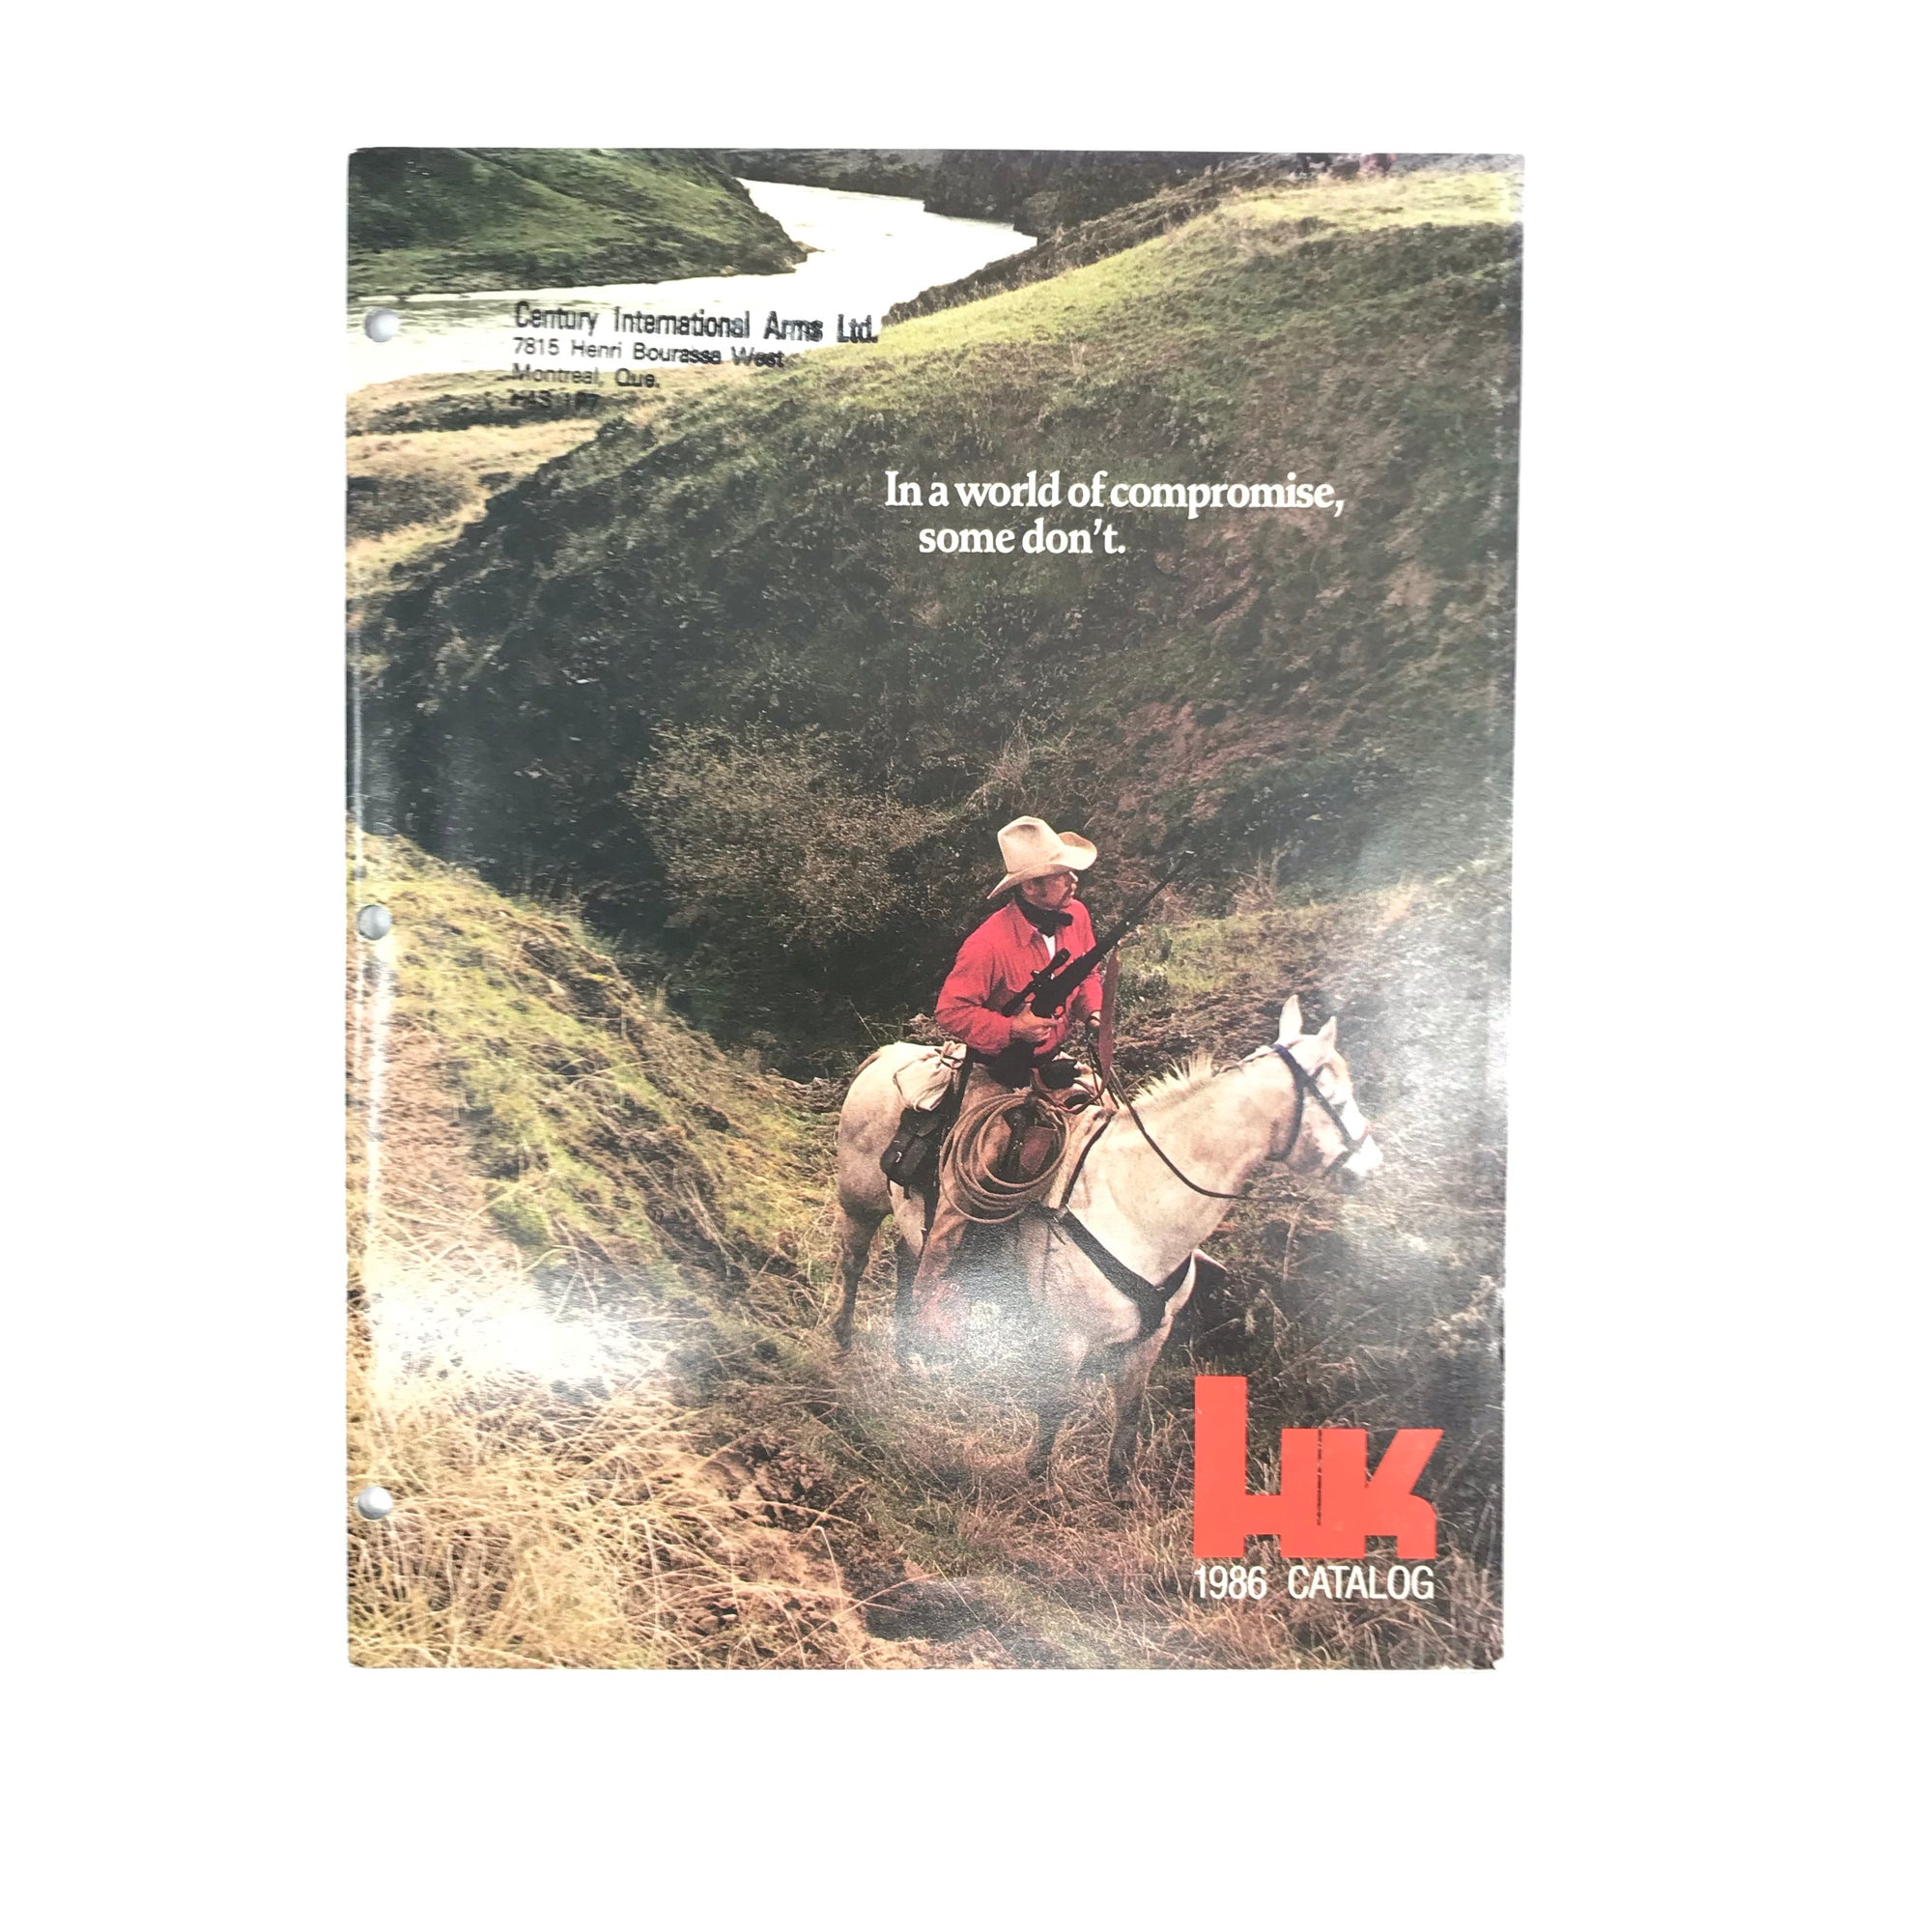 Heckler & Koch Firearms HK 1986 Catalogue